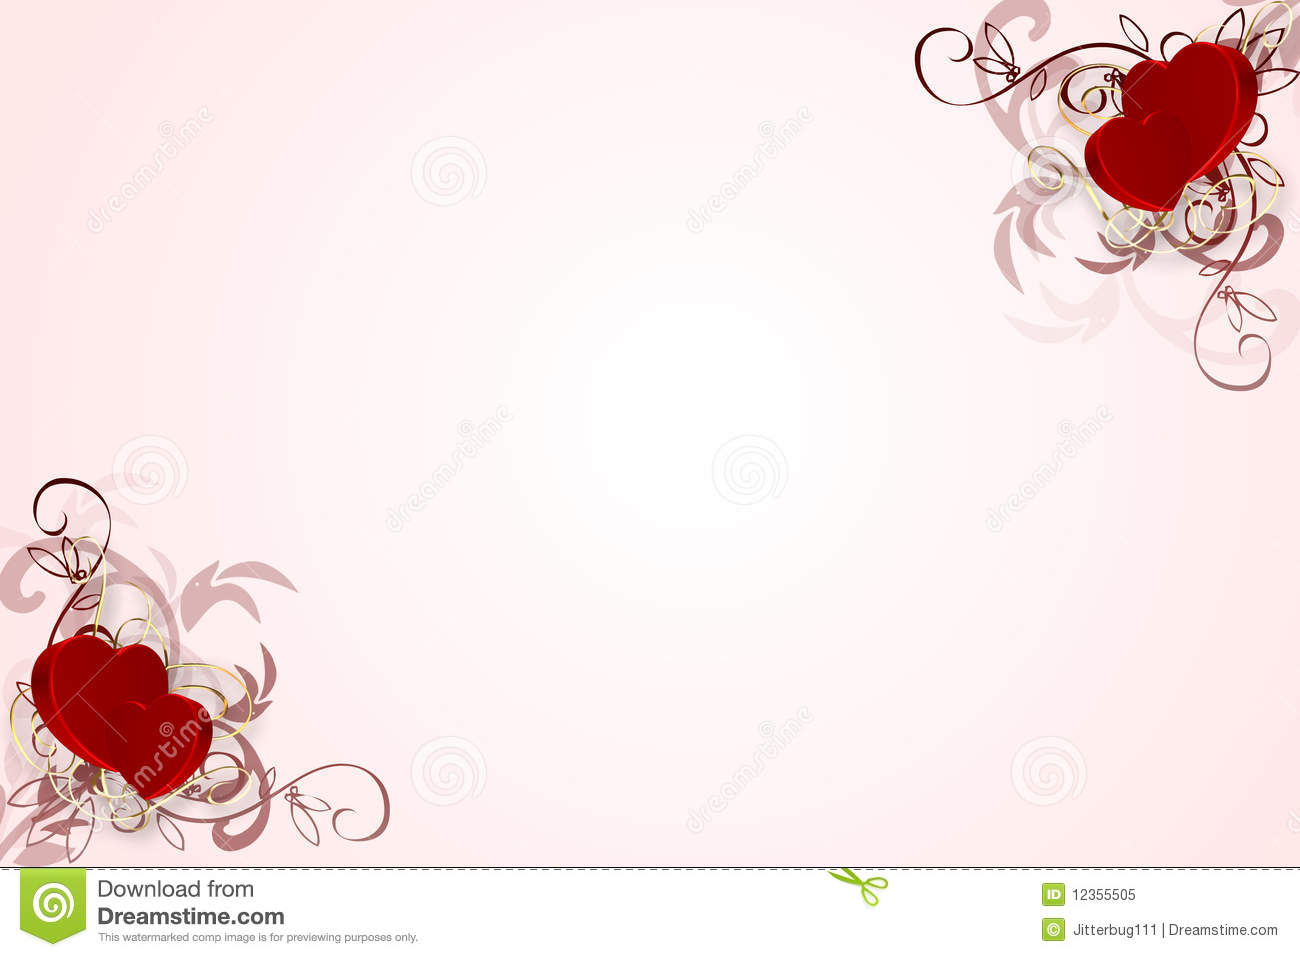 3d Heart Wallpaper Backgrounds Decorative Heart Background Royalty Free Stock Photo